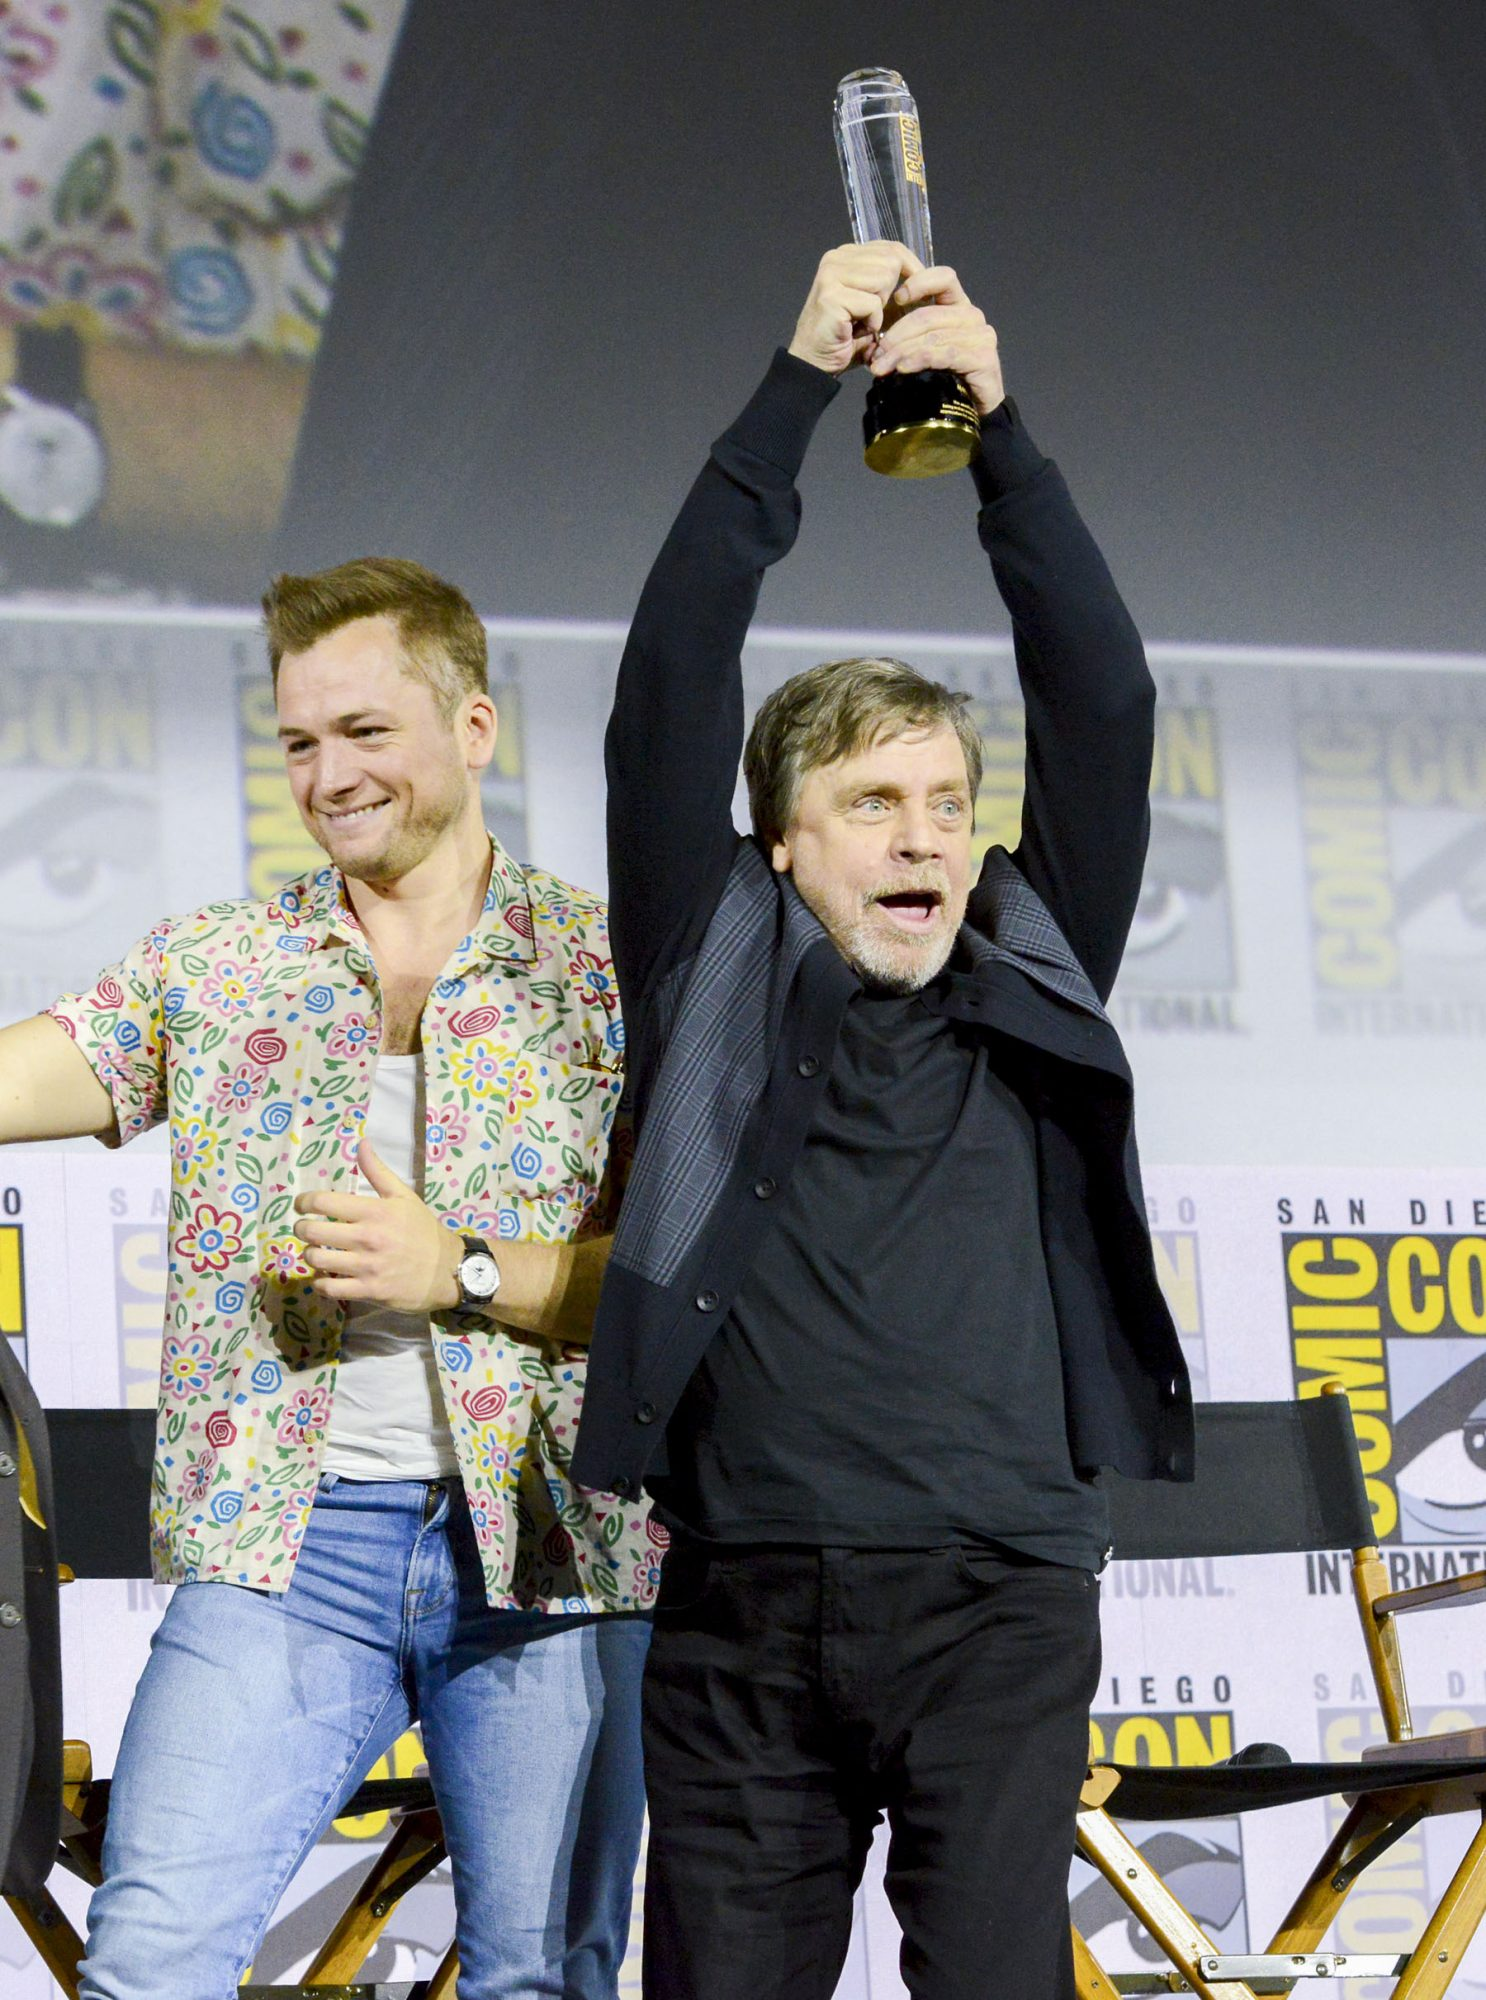 """SAN DIEGO, CALIFORNIA - JULY 19: Taron Egerton and Mark Hamill speak at the Netflix's """"The Dark Crystal: Age Of Resistance"""" Panel during 2019 Comic-Con International at San Diego Convention Center on July 19, 2019 in San Diego, California. (Photo by Albert L. Ortega/Getty Images)"""